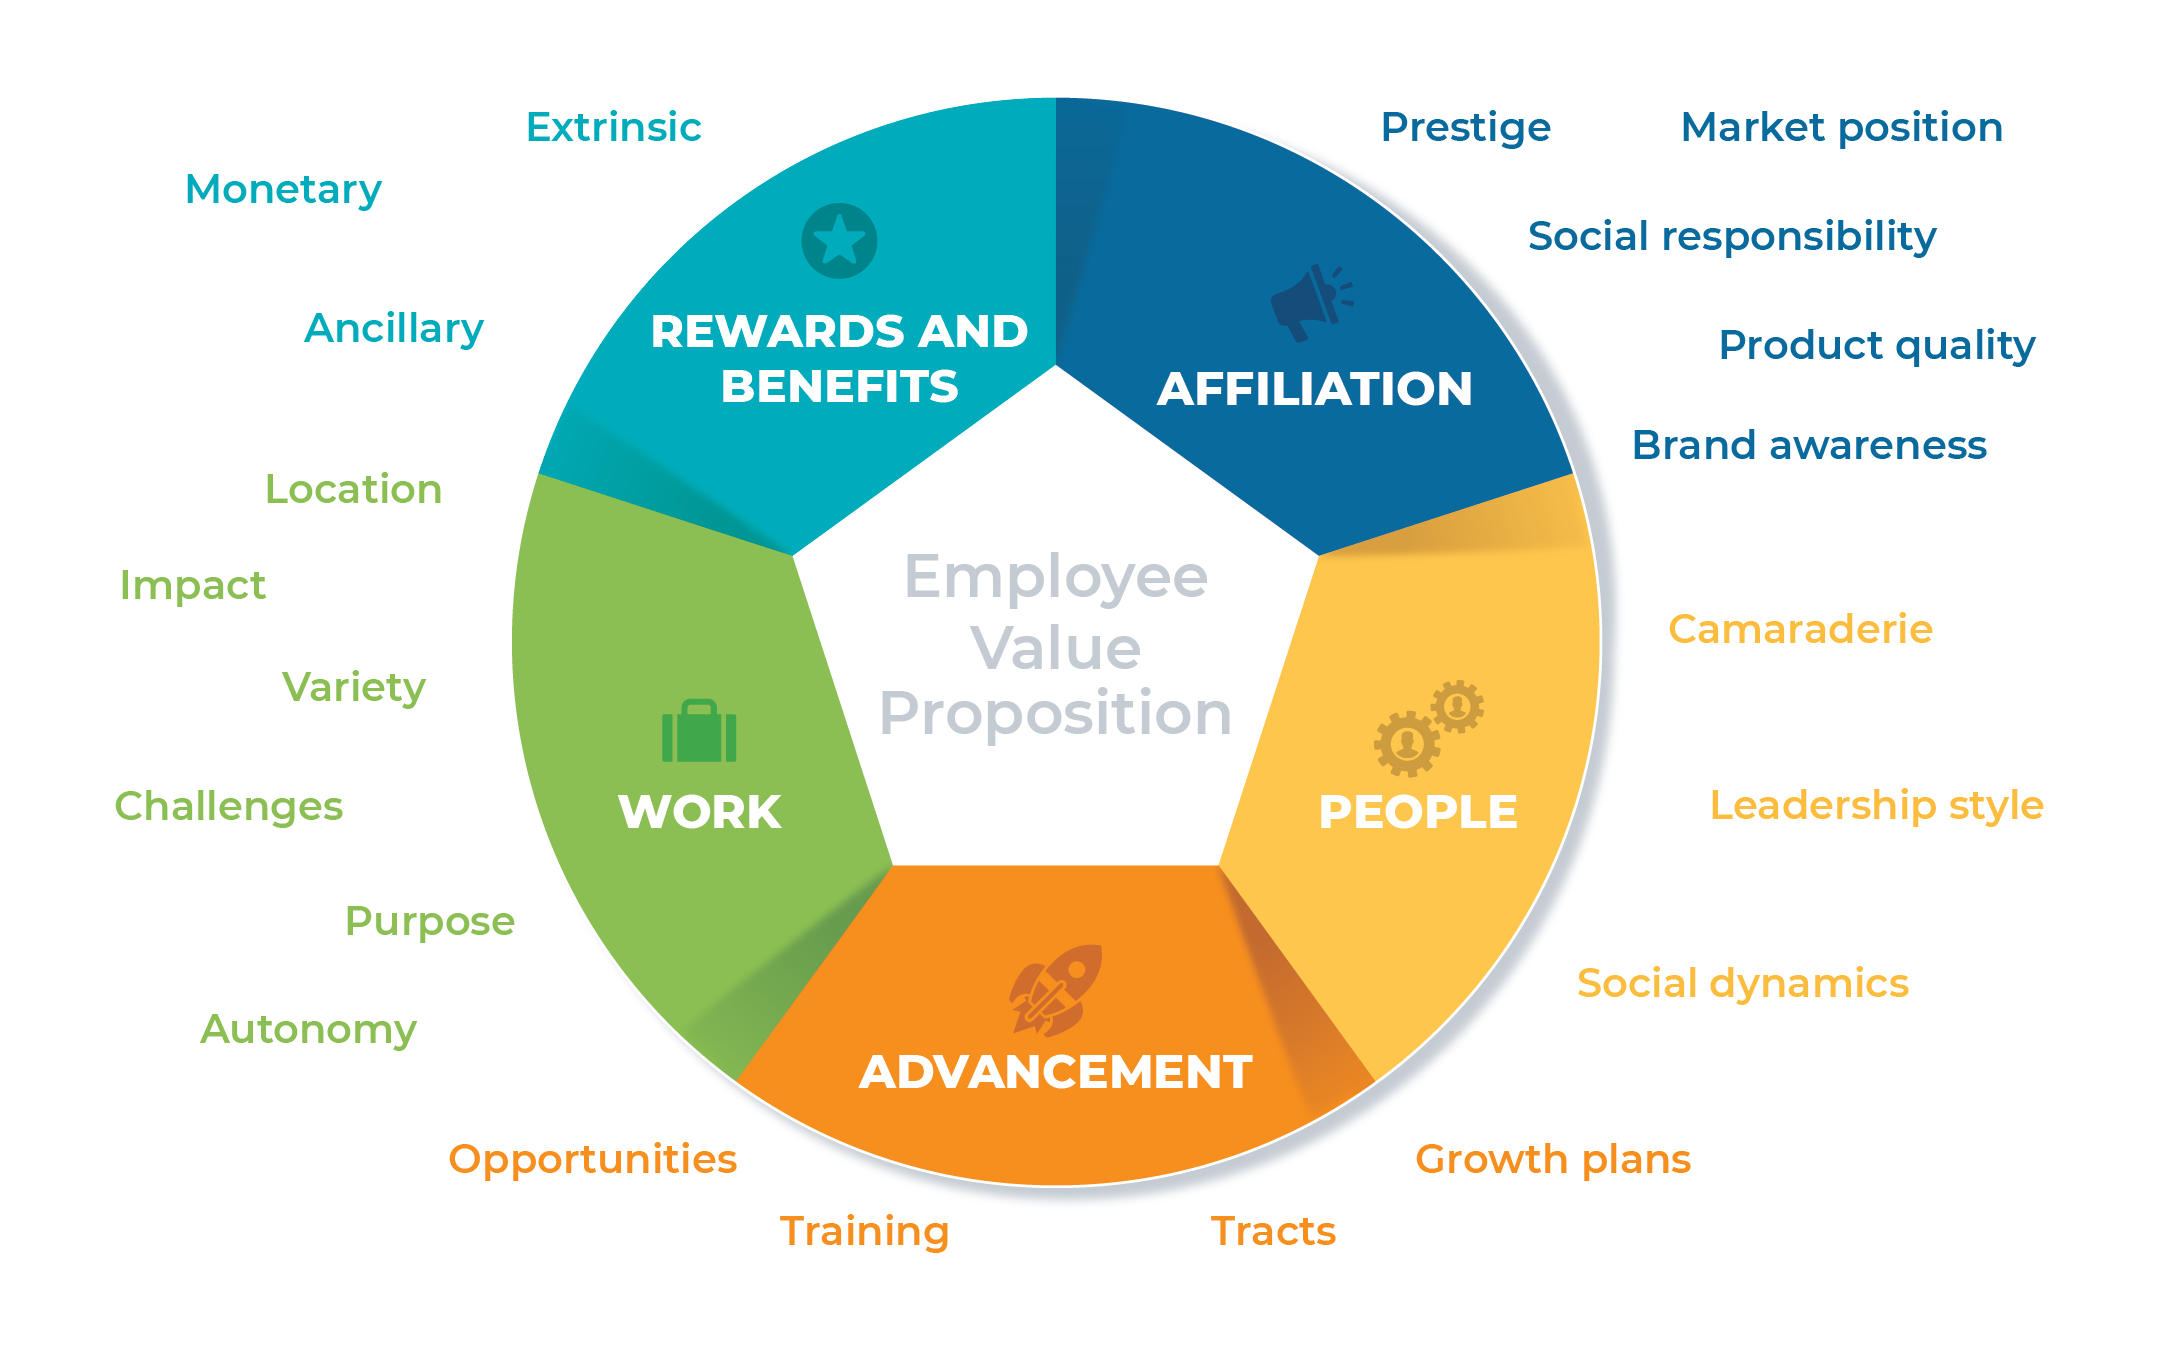 Employee Value Proposition chart